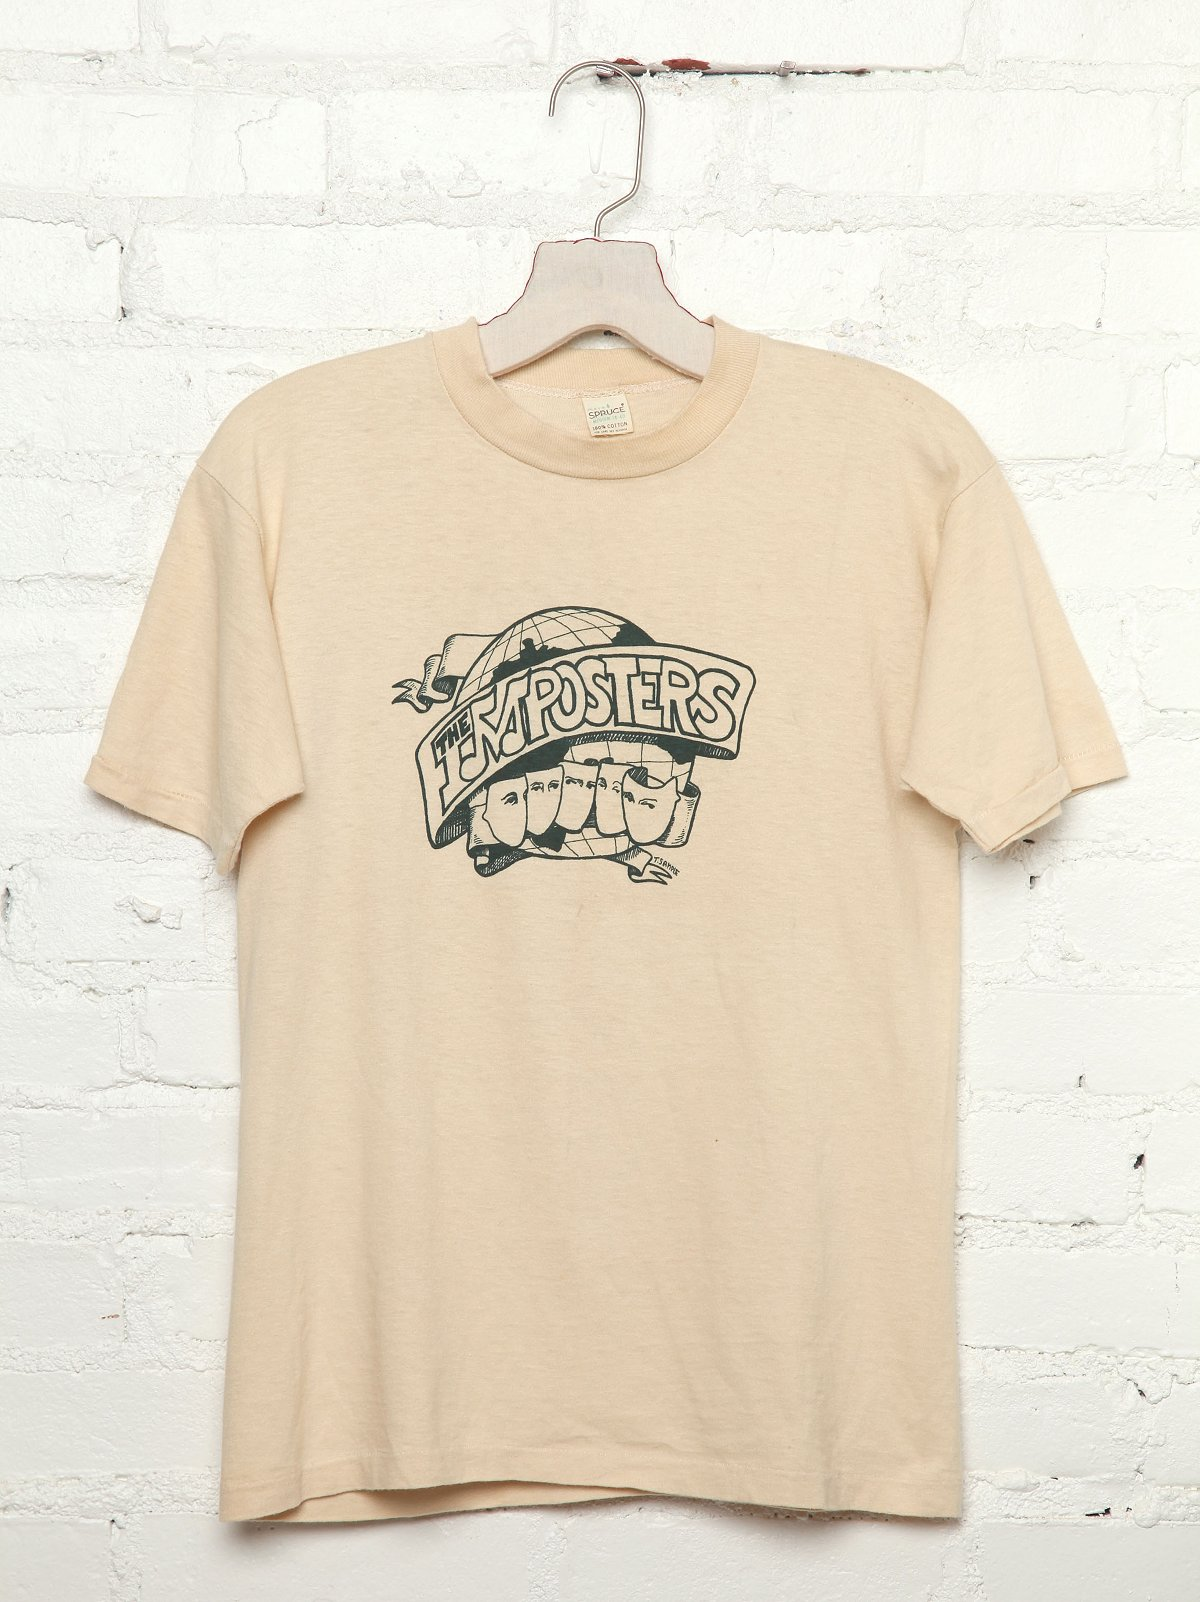 Vintage The Imposters Tee